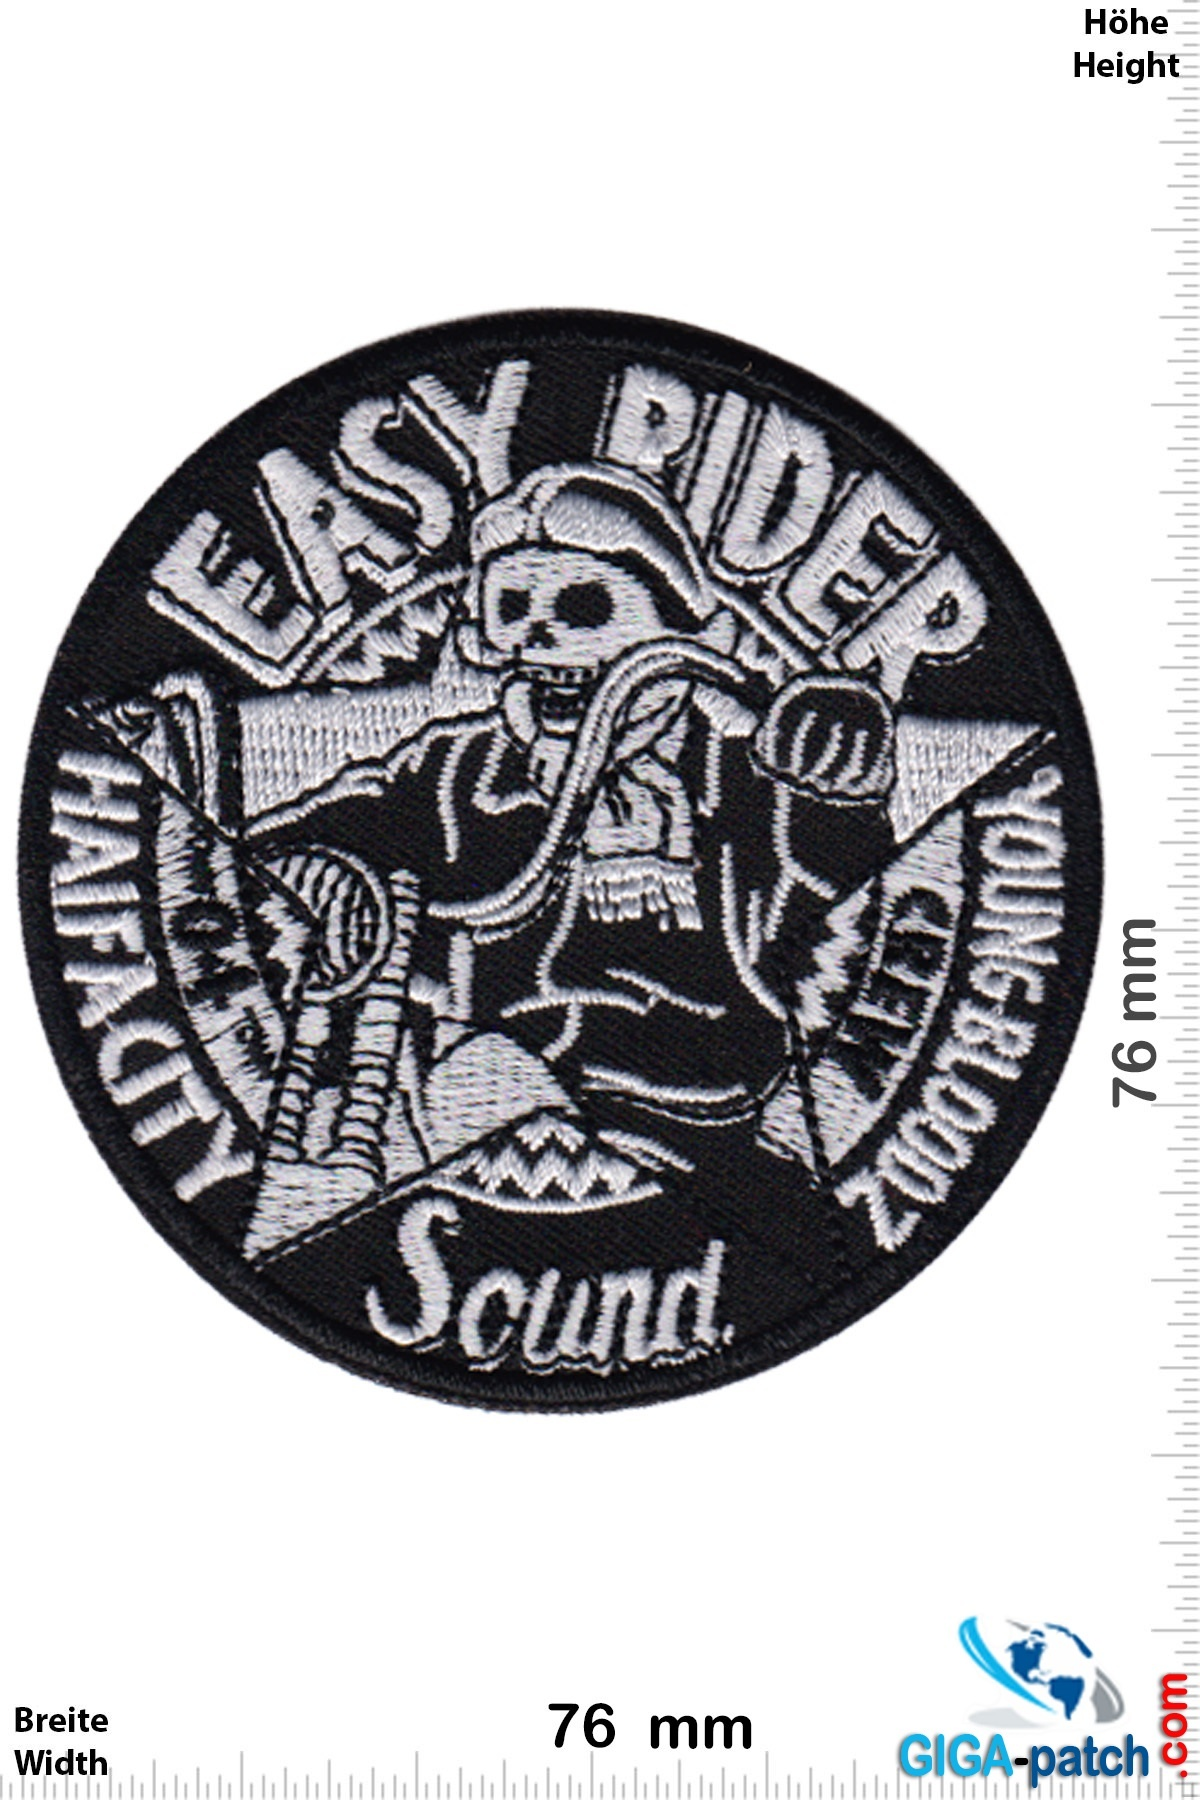 Easy Rider - Young Bloodz Crew